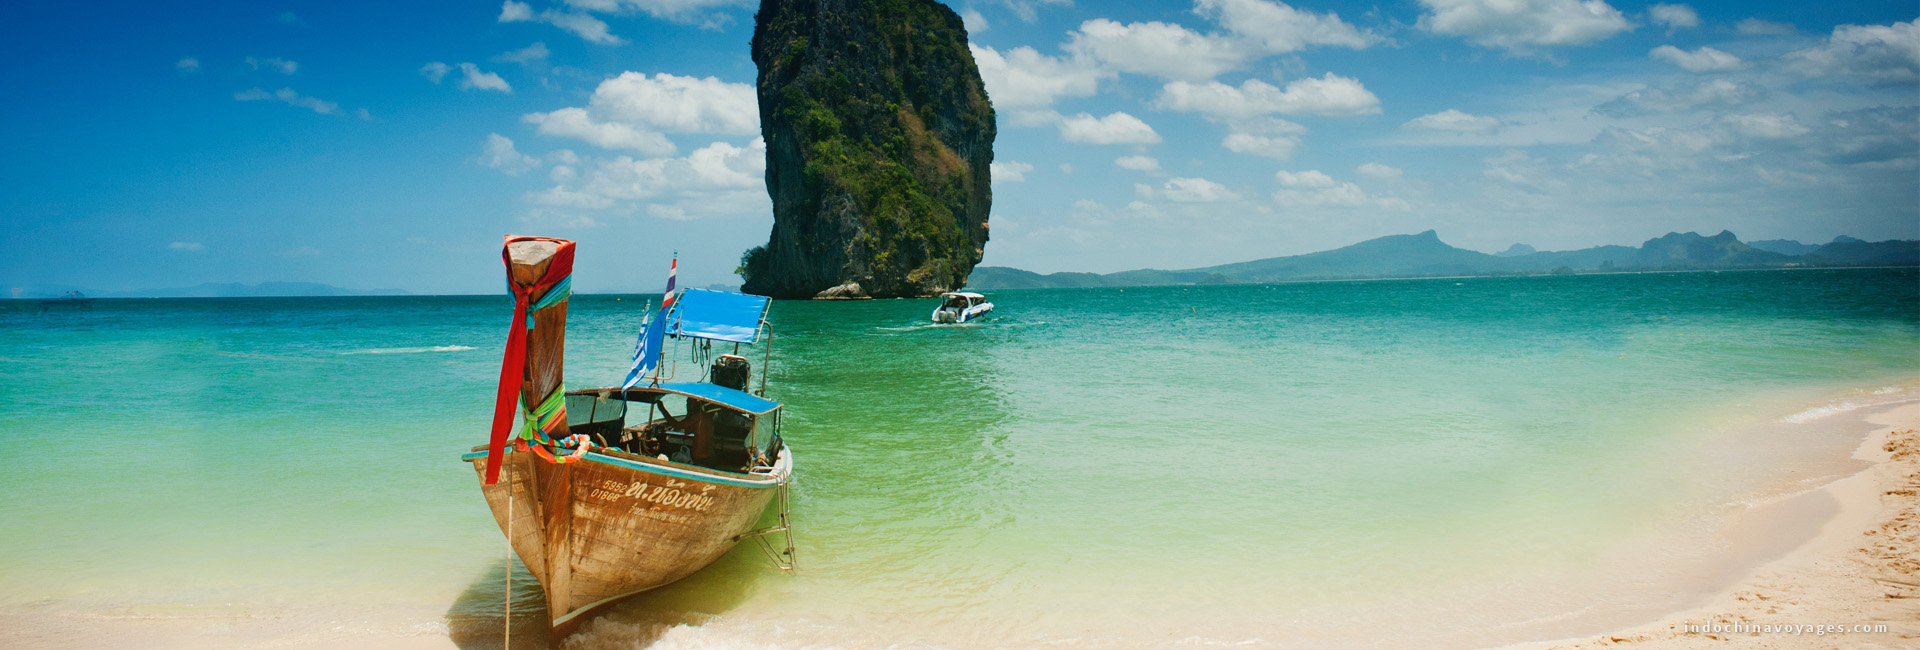 Immerse yourself among bustling cities and sleepy beaches of Thailand